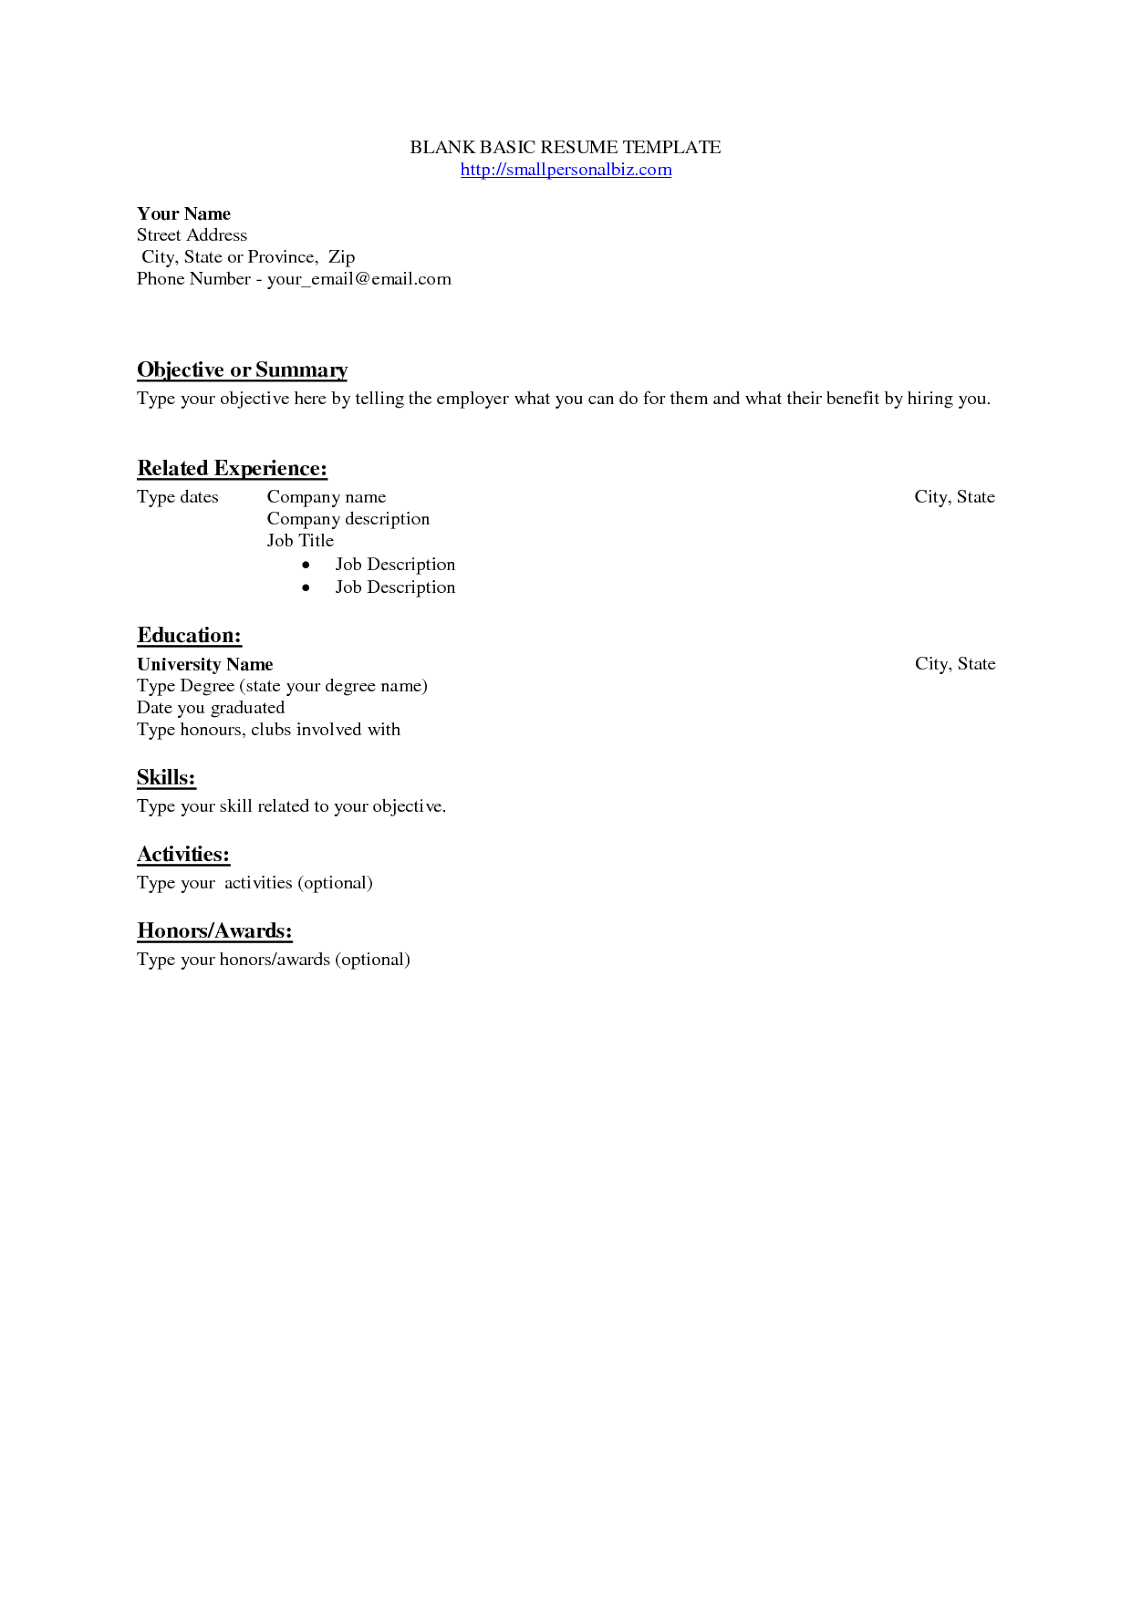 resume builder free printable resume making for free one third christmas gift guide for her where